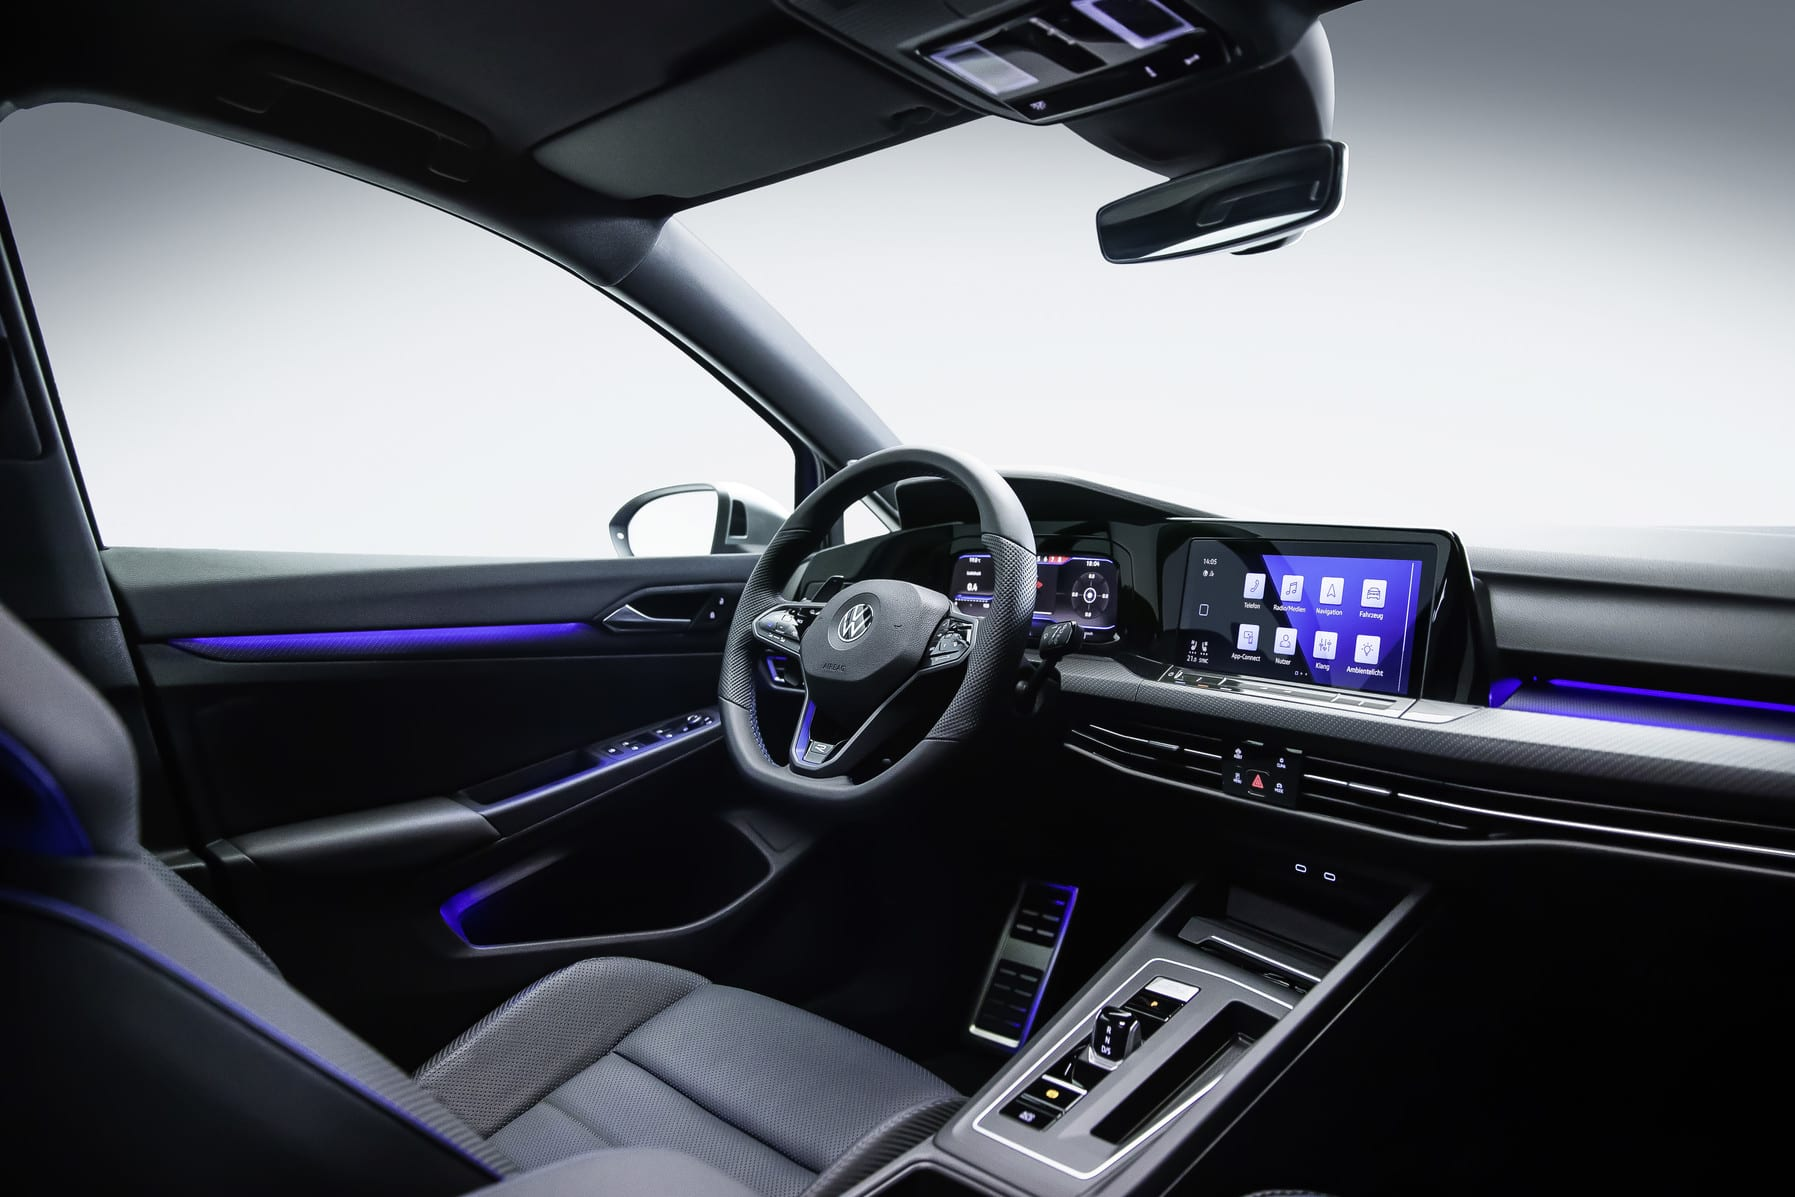 The interior of the new Golf R